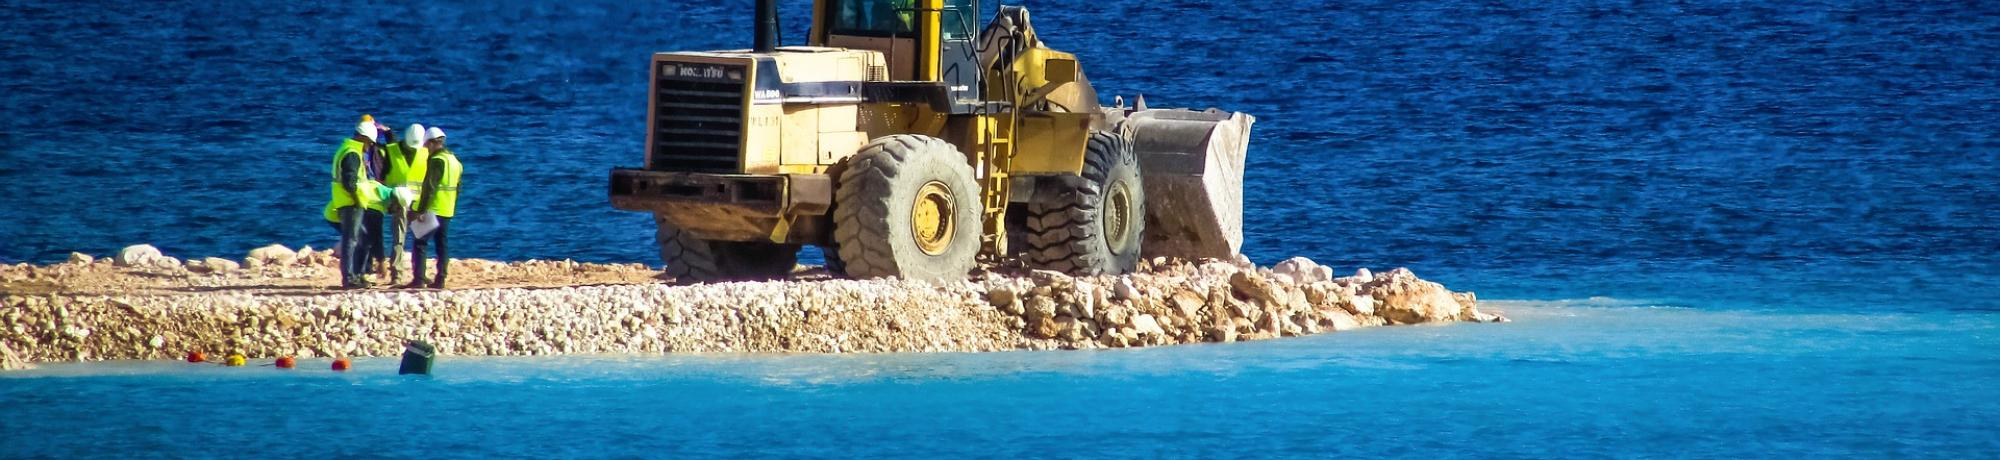 Three construction workers conferring next to a bulldozer, all of which stand on a small man-made gravel island, surrounded by the sea.